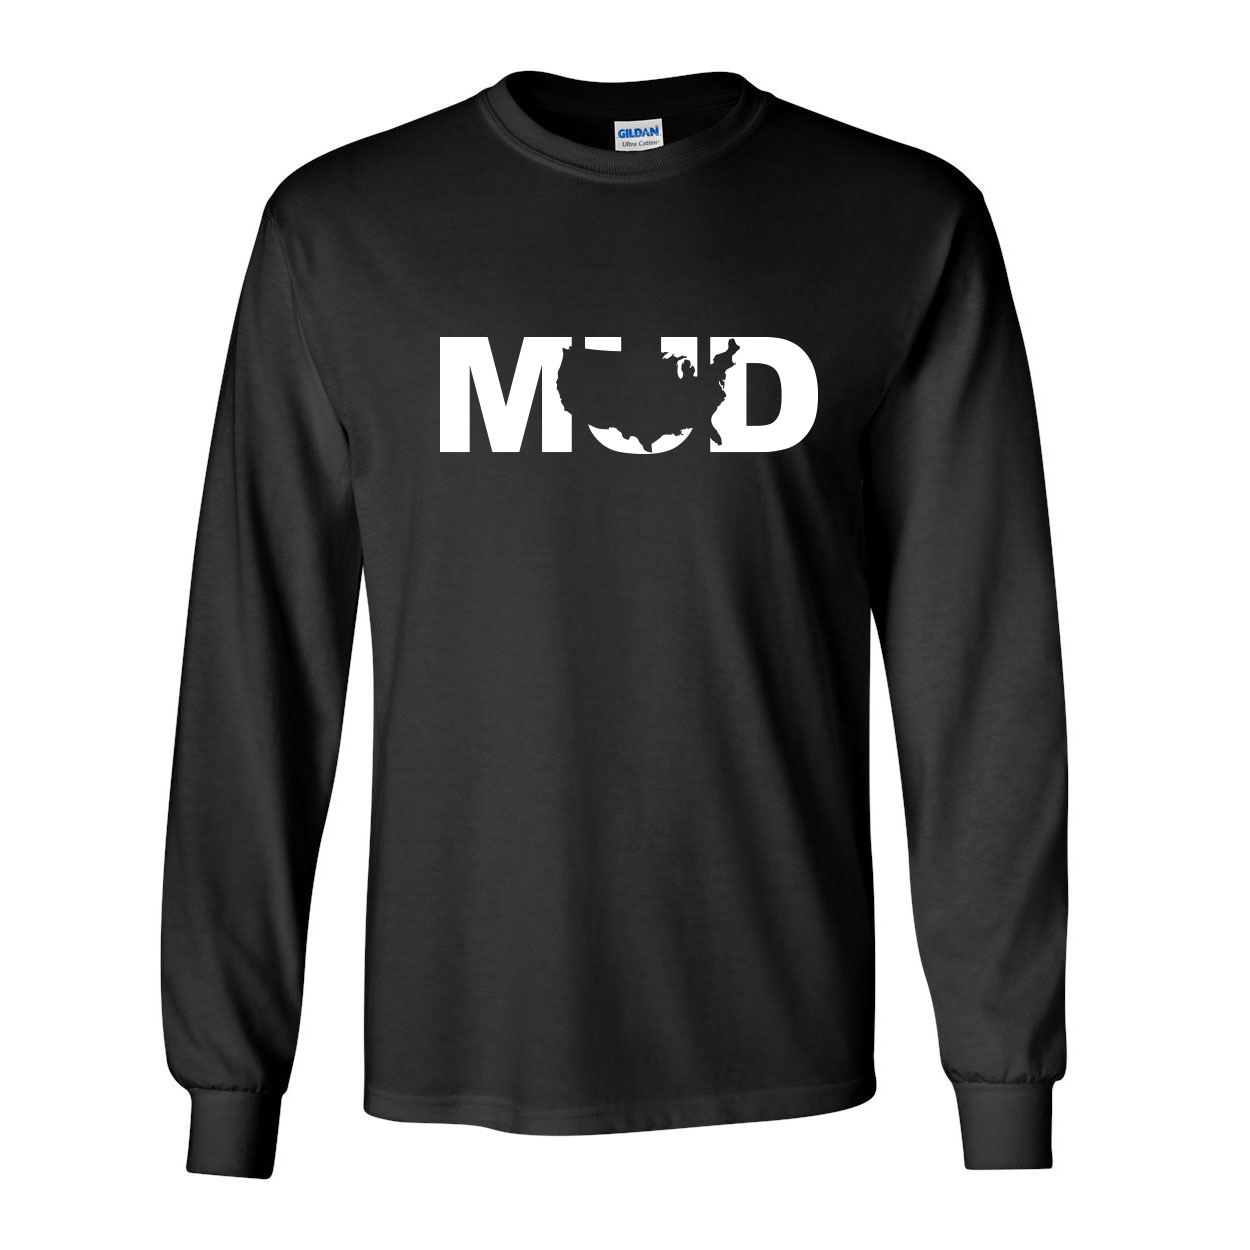 Mud United States Classic Long Sleeve T-Shirt Black (White Logo)